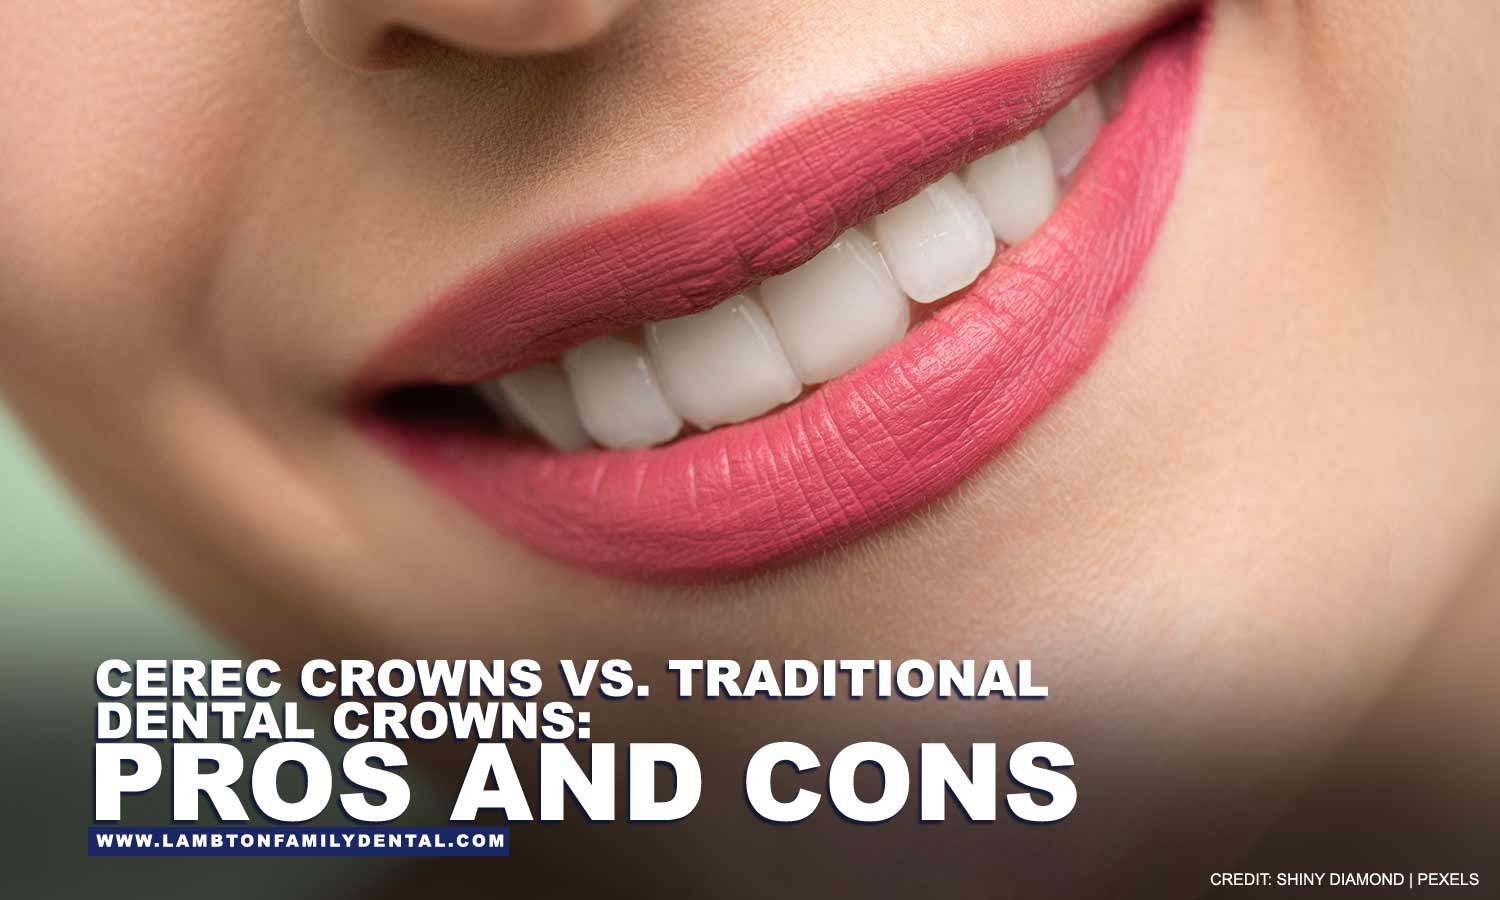 CEREC Crowns vs. Traditional Dental Crowns: Pros and Cons